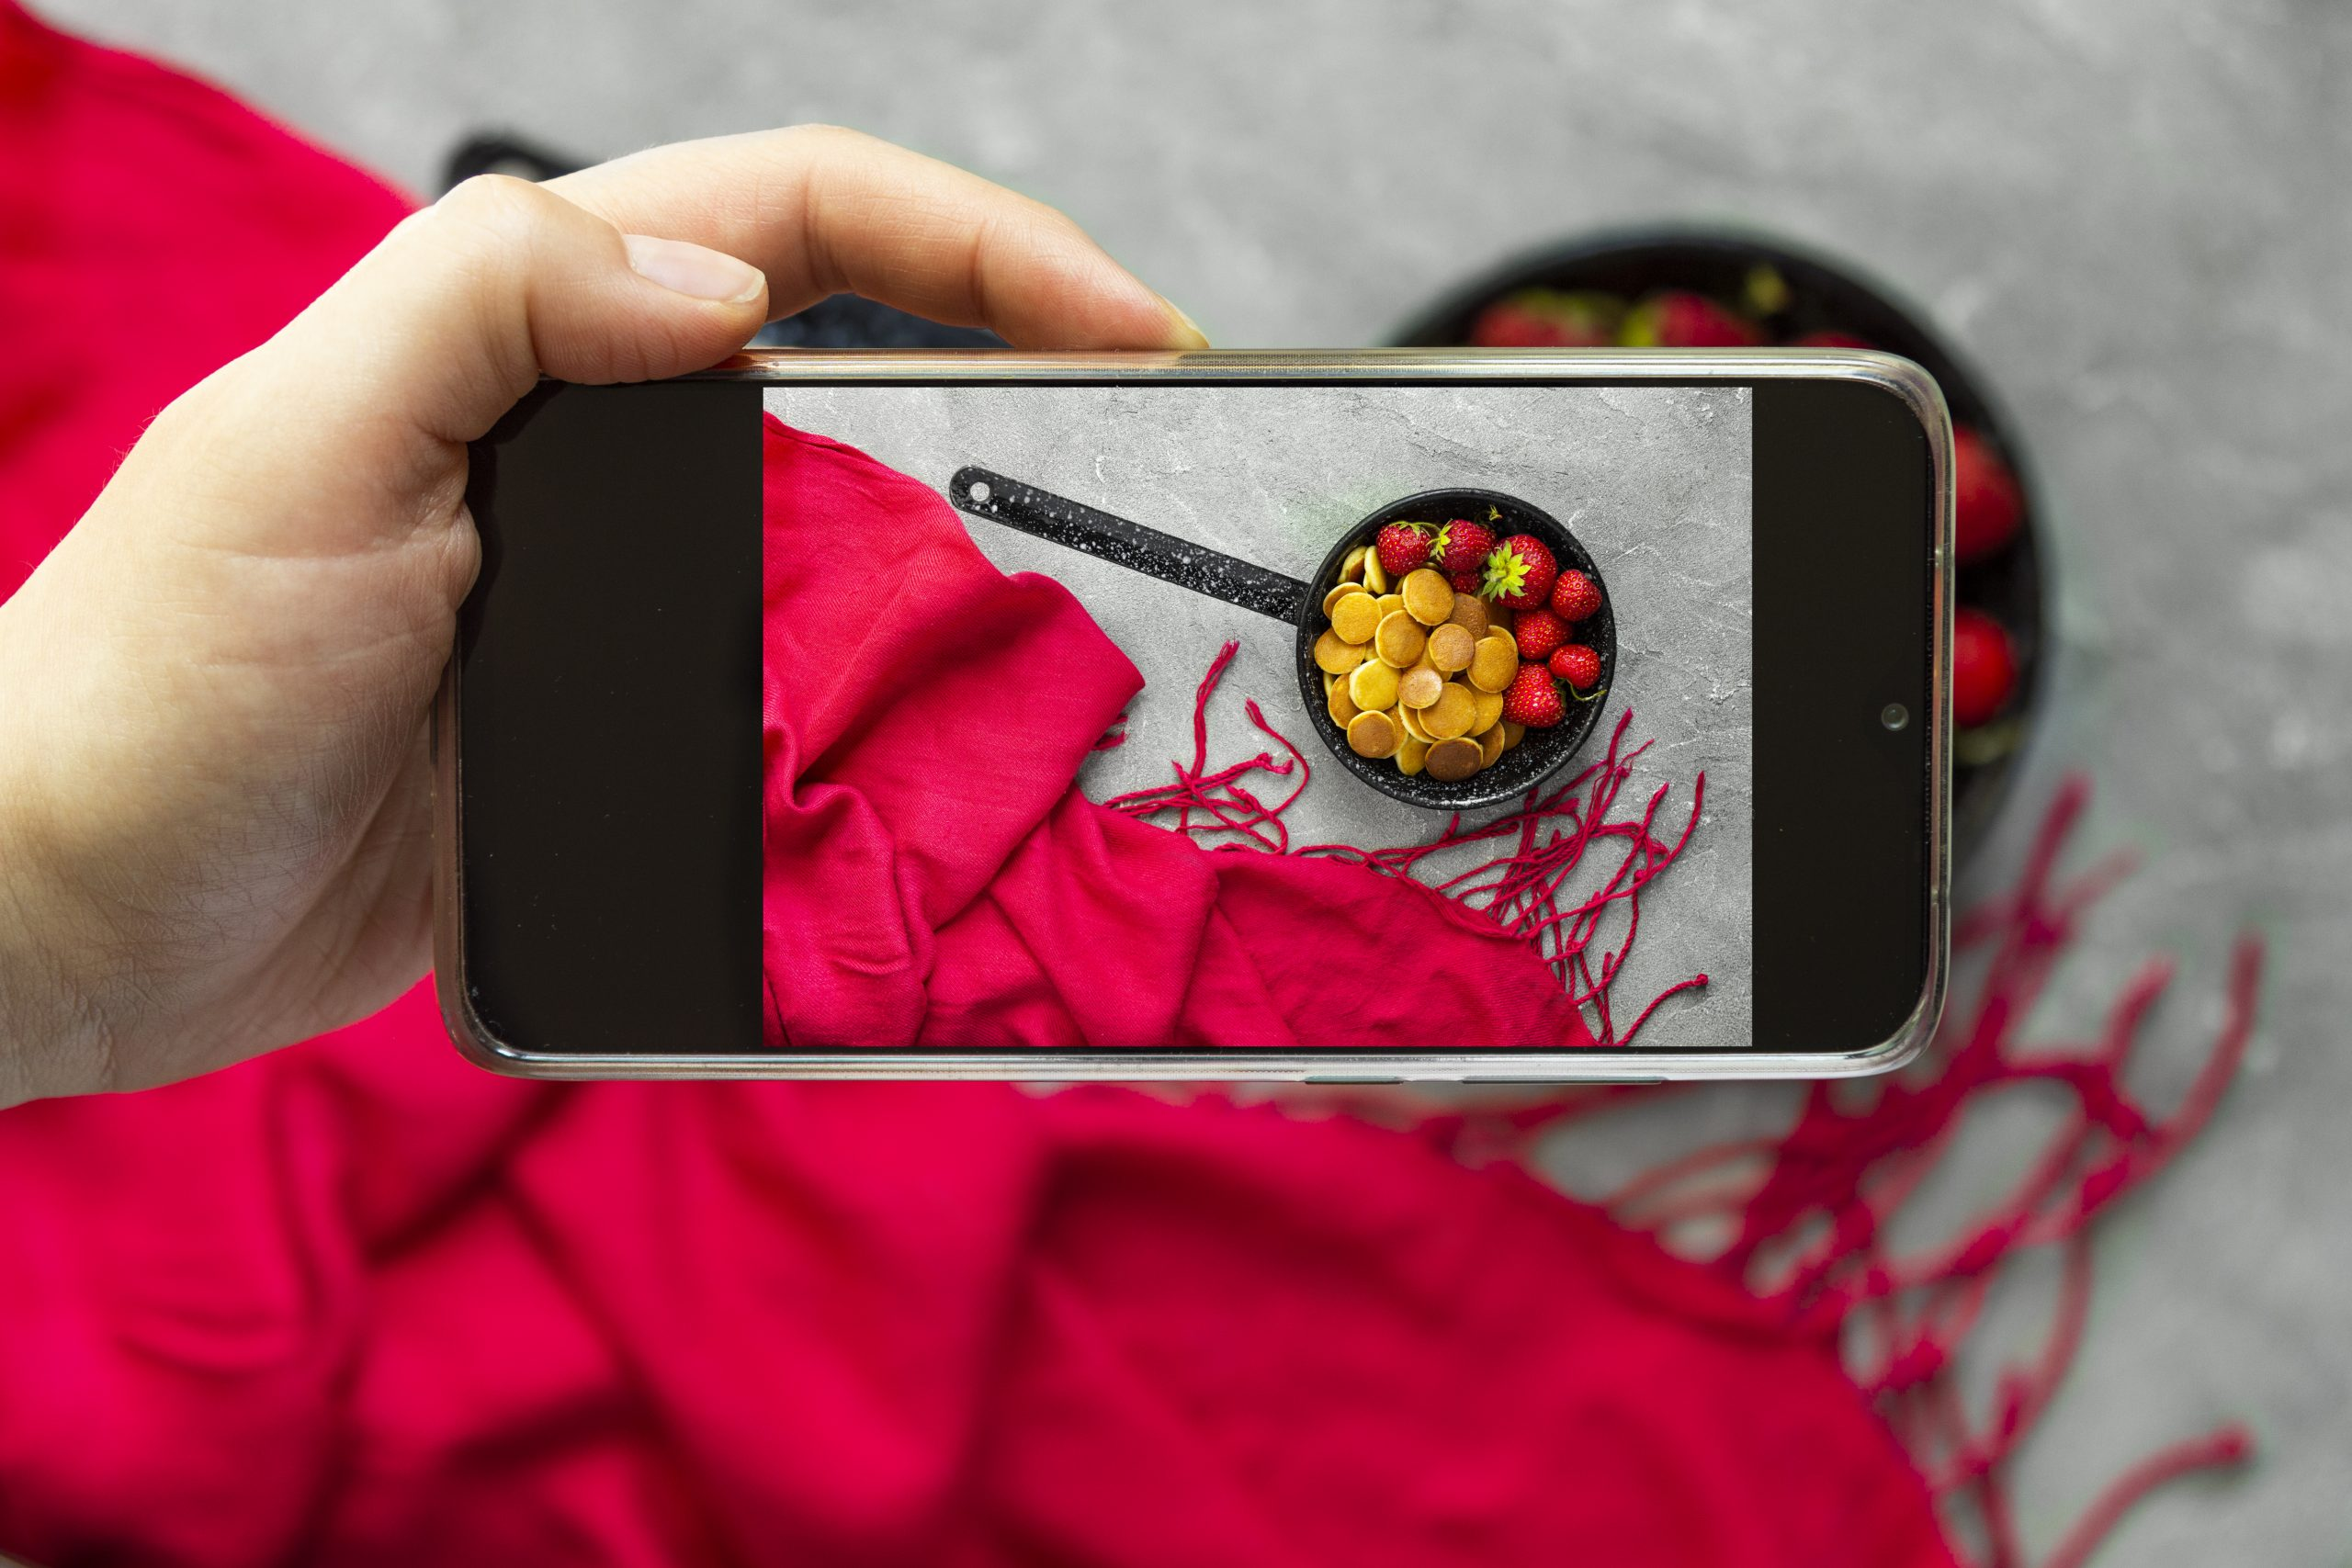 How to Take Attention Grabbing Product Photos with Smartphones?